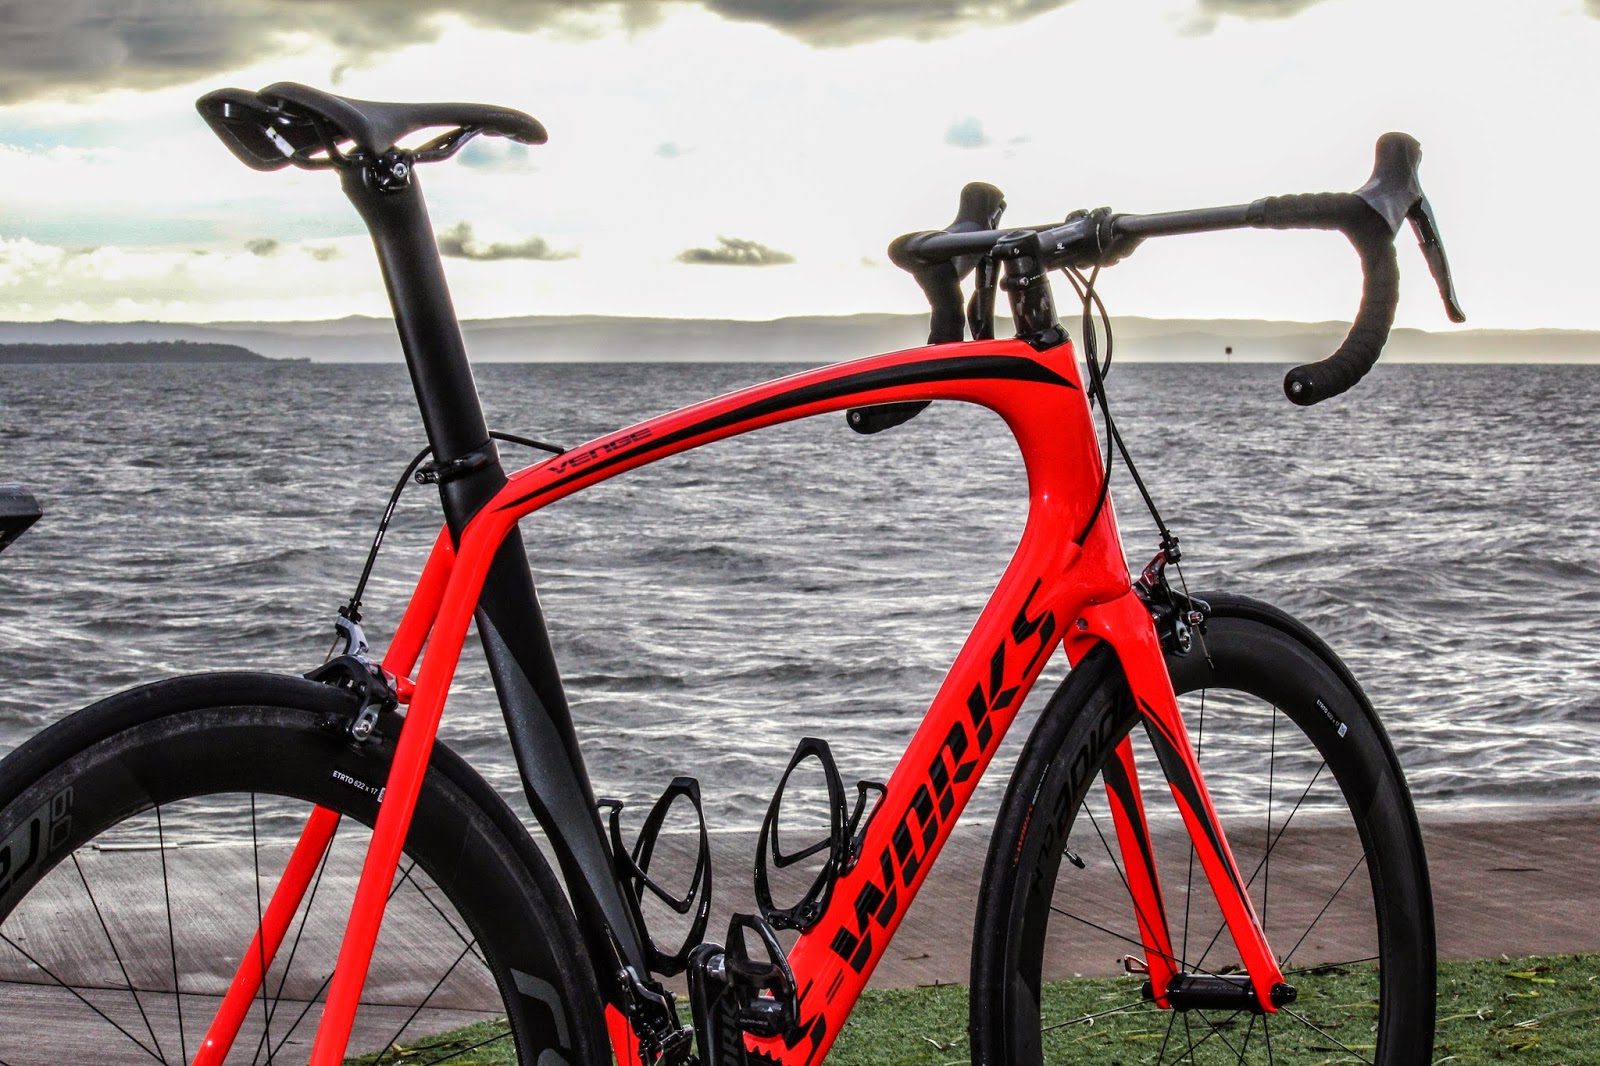 9480eb3e15f Specialized Venge Pro Race 2015 Road Bike | ROAD BIKES | Evans Cycles